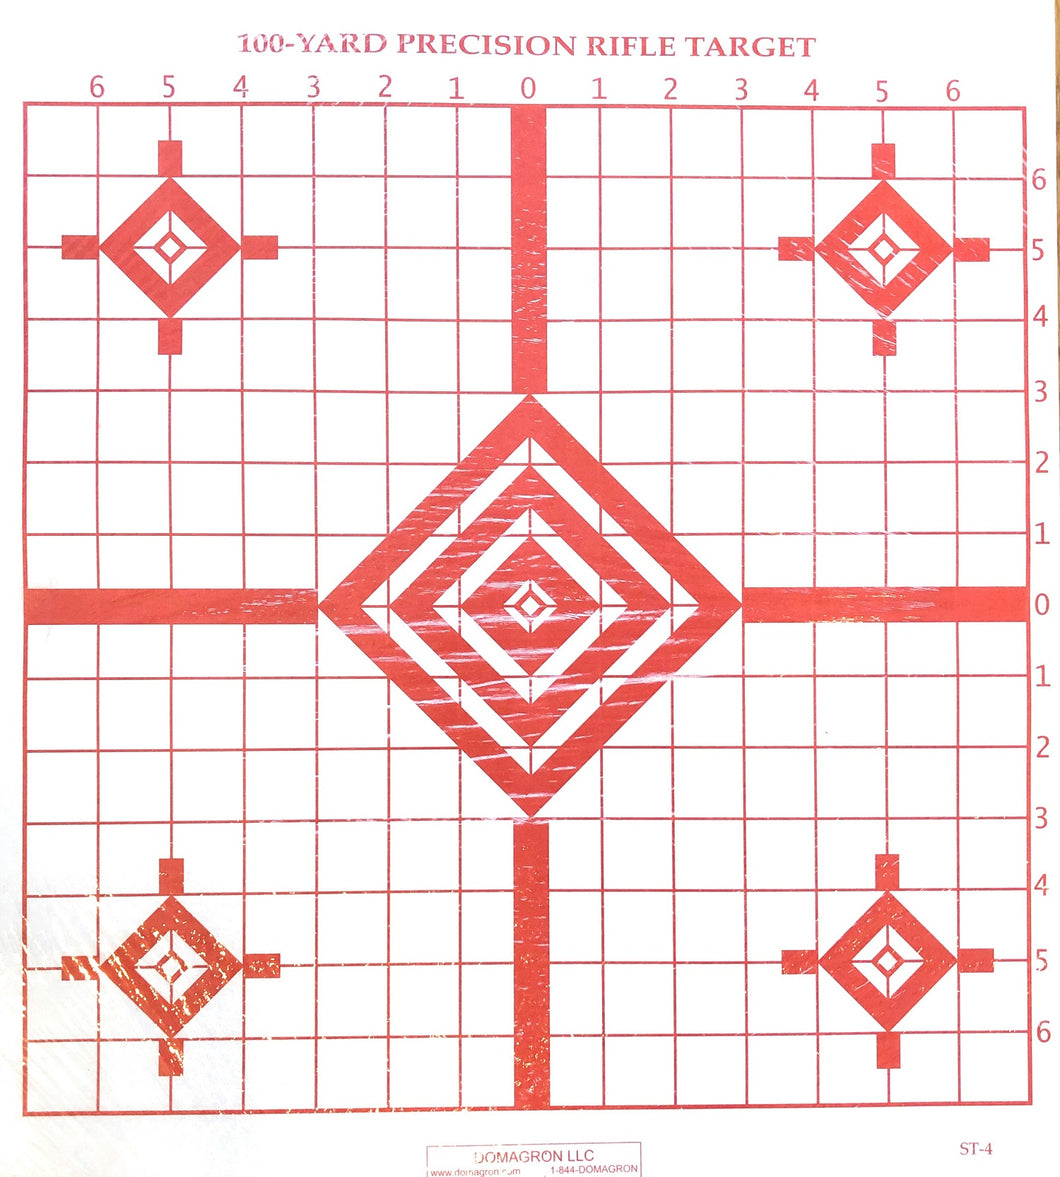 ST-4 - 100 Yard Rifle Sighting Target